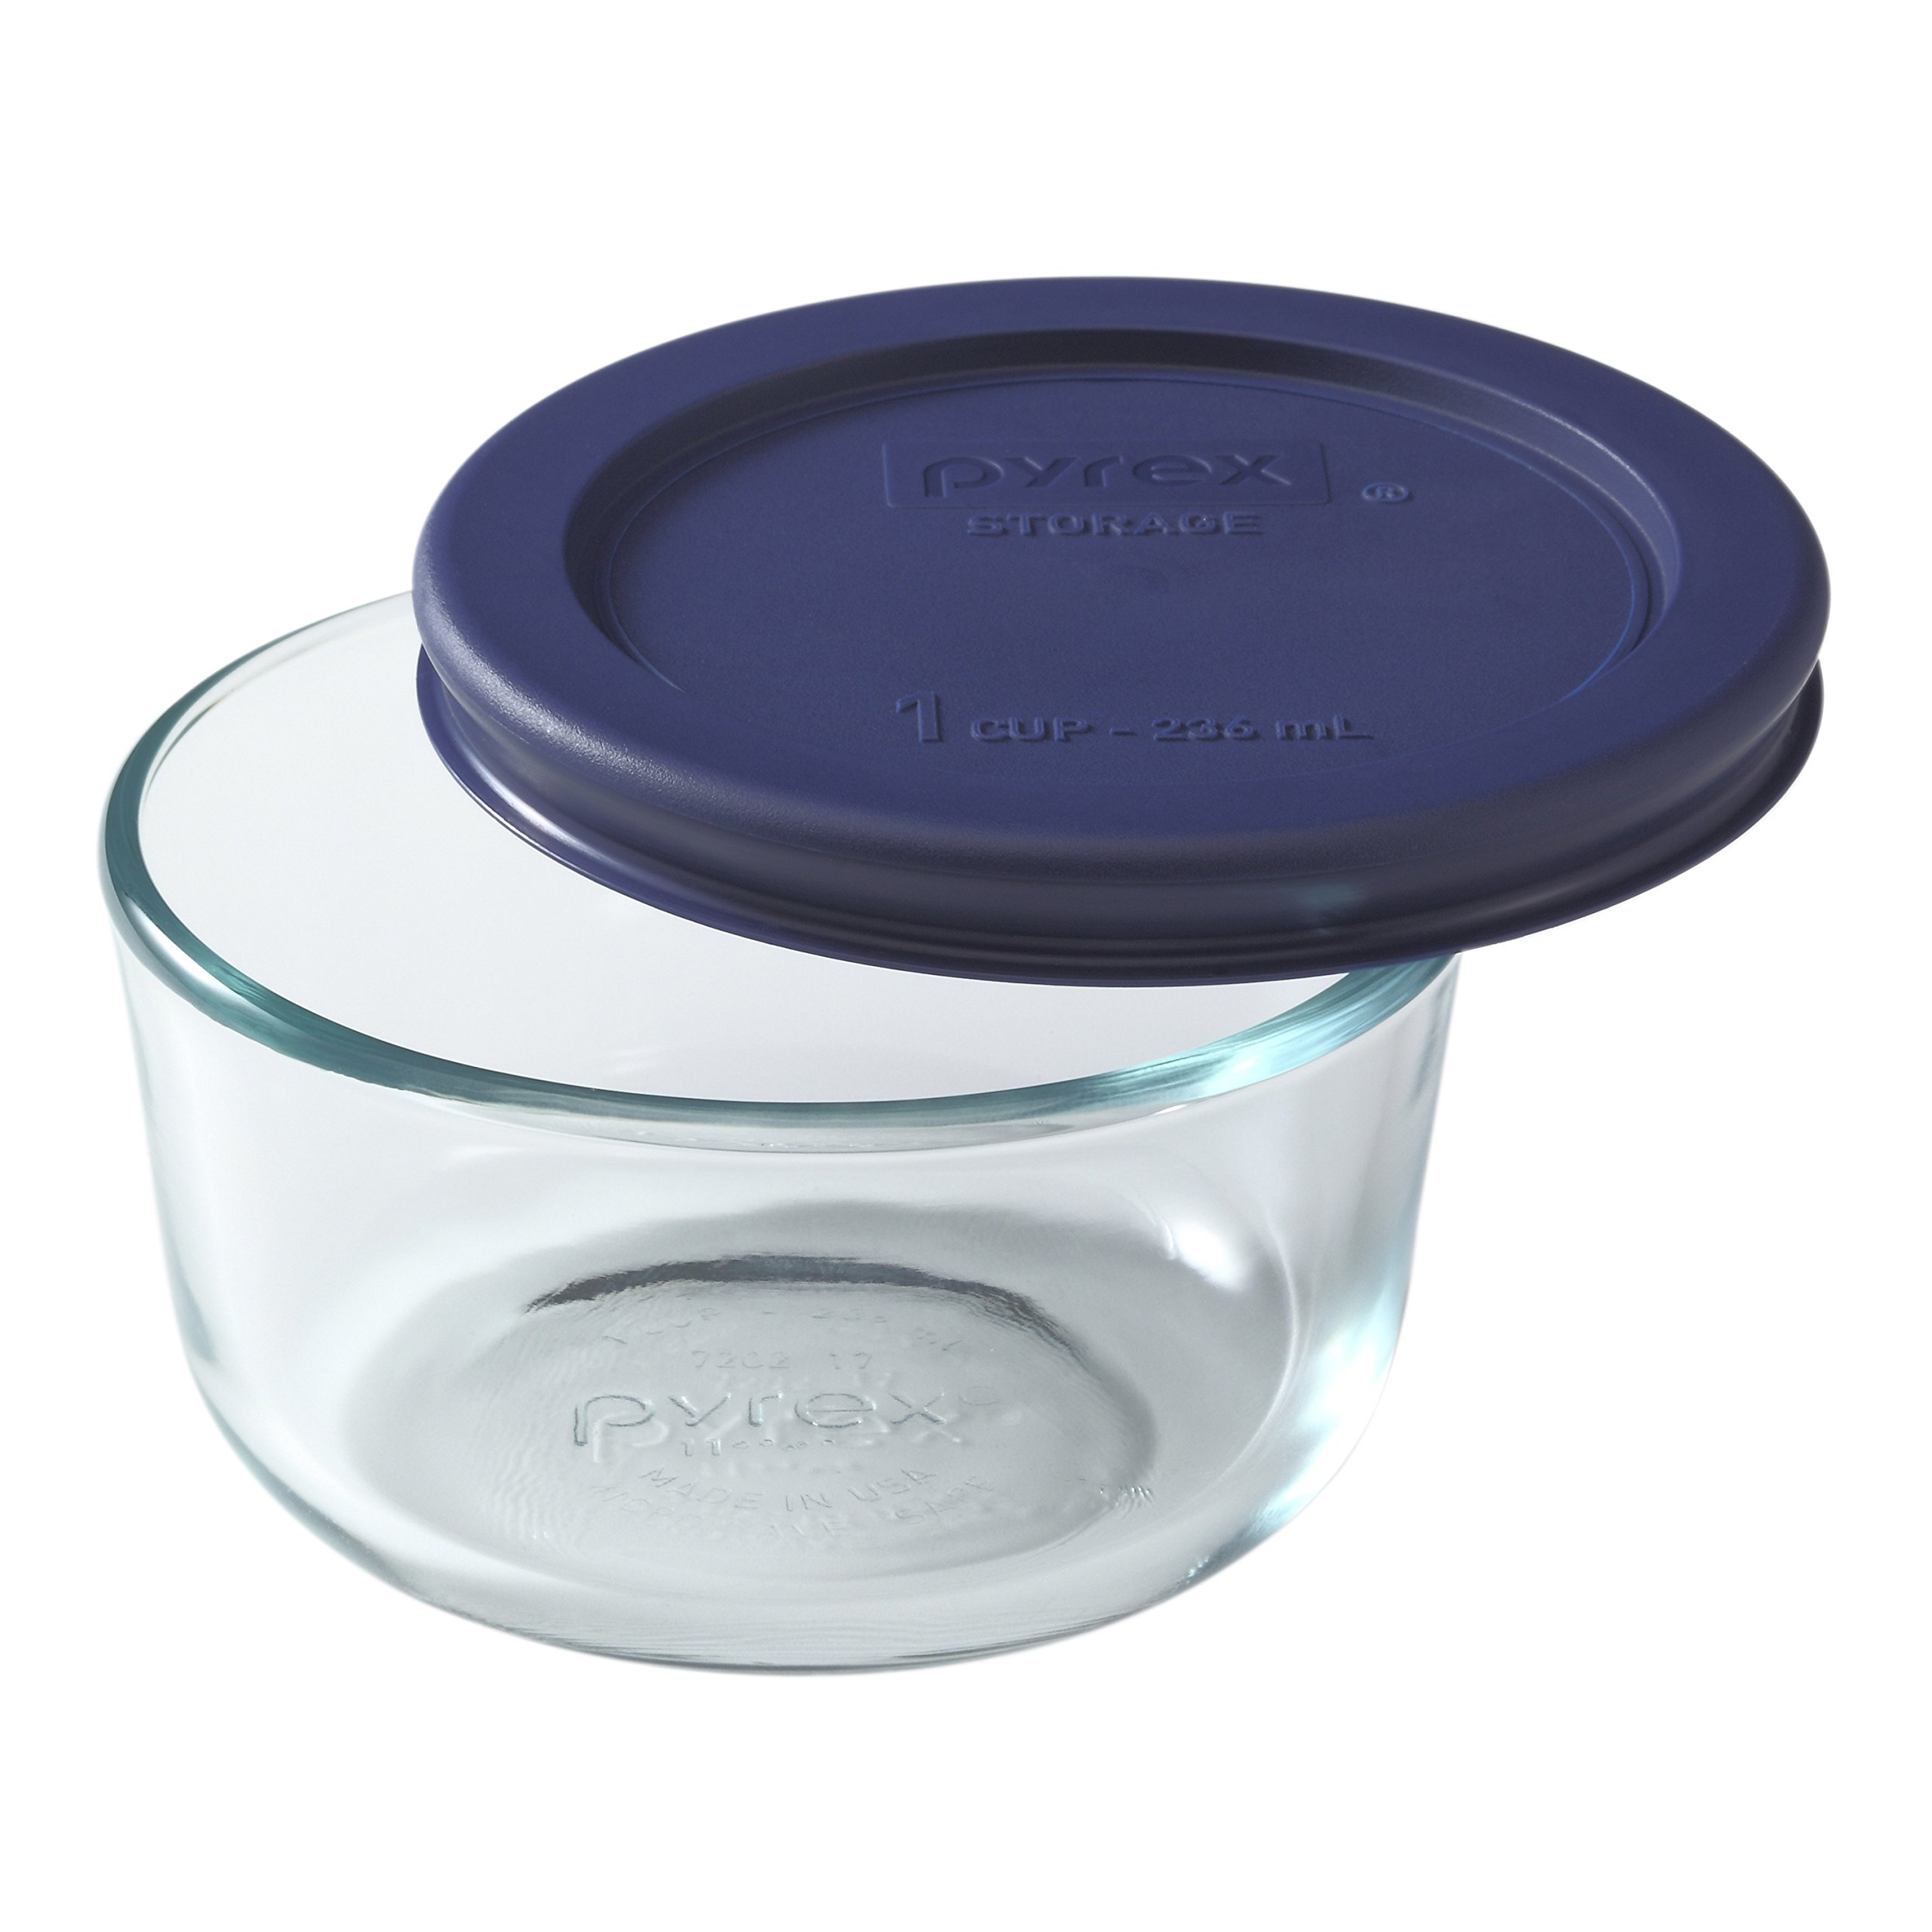 Pyrex Easy Grab Glass Bakeware and Food Storage Set (8-Piece, BPA-free) by Pyrex (Image #5)